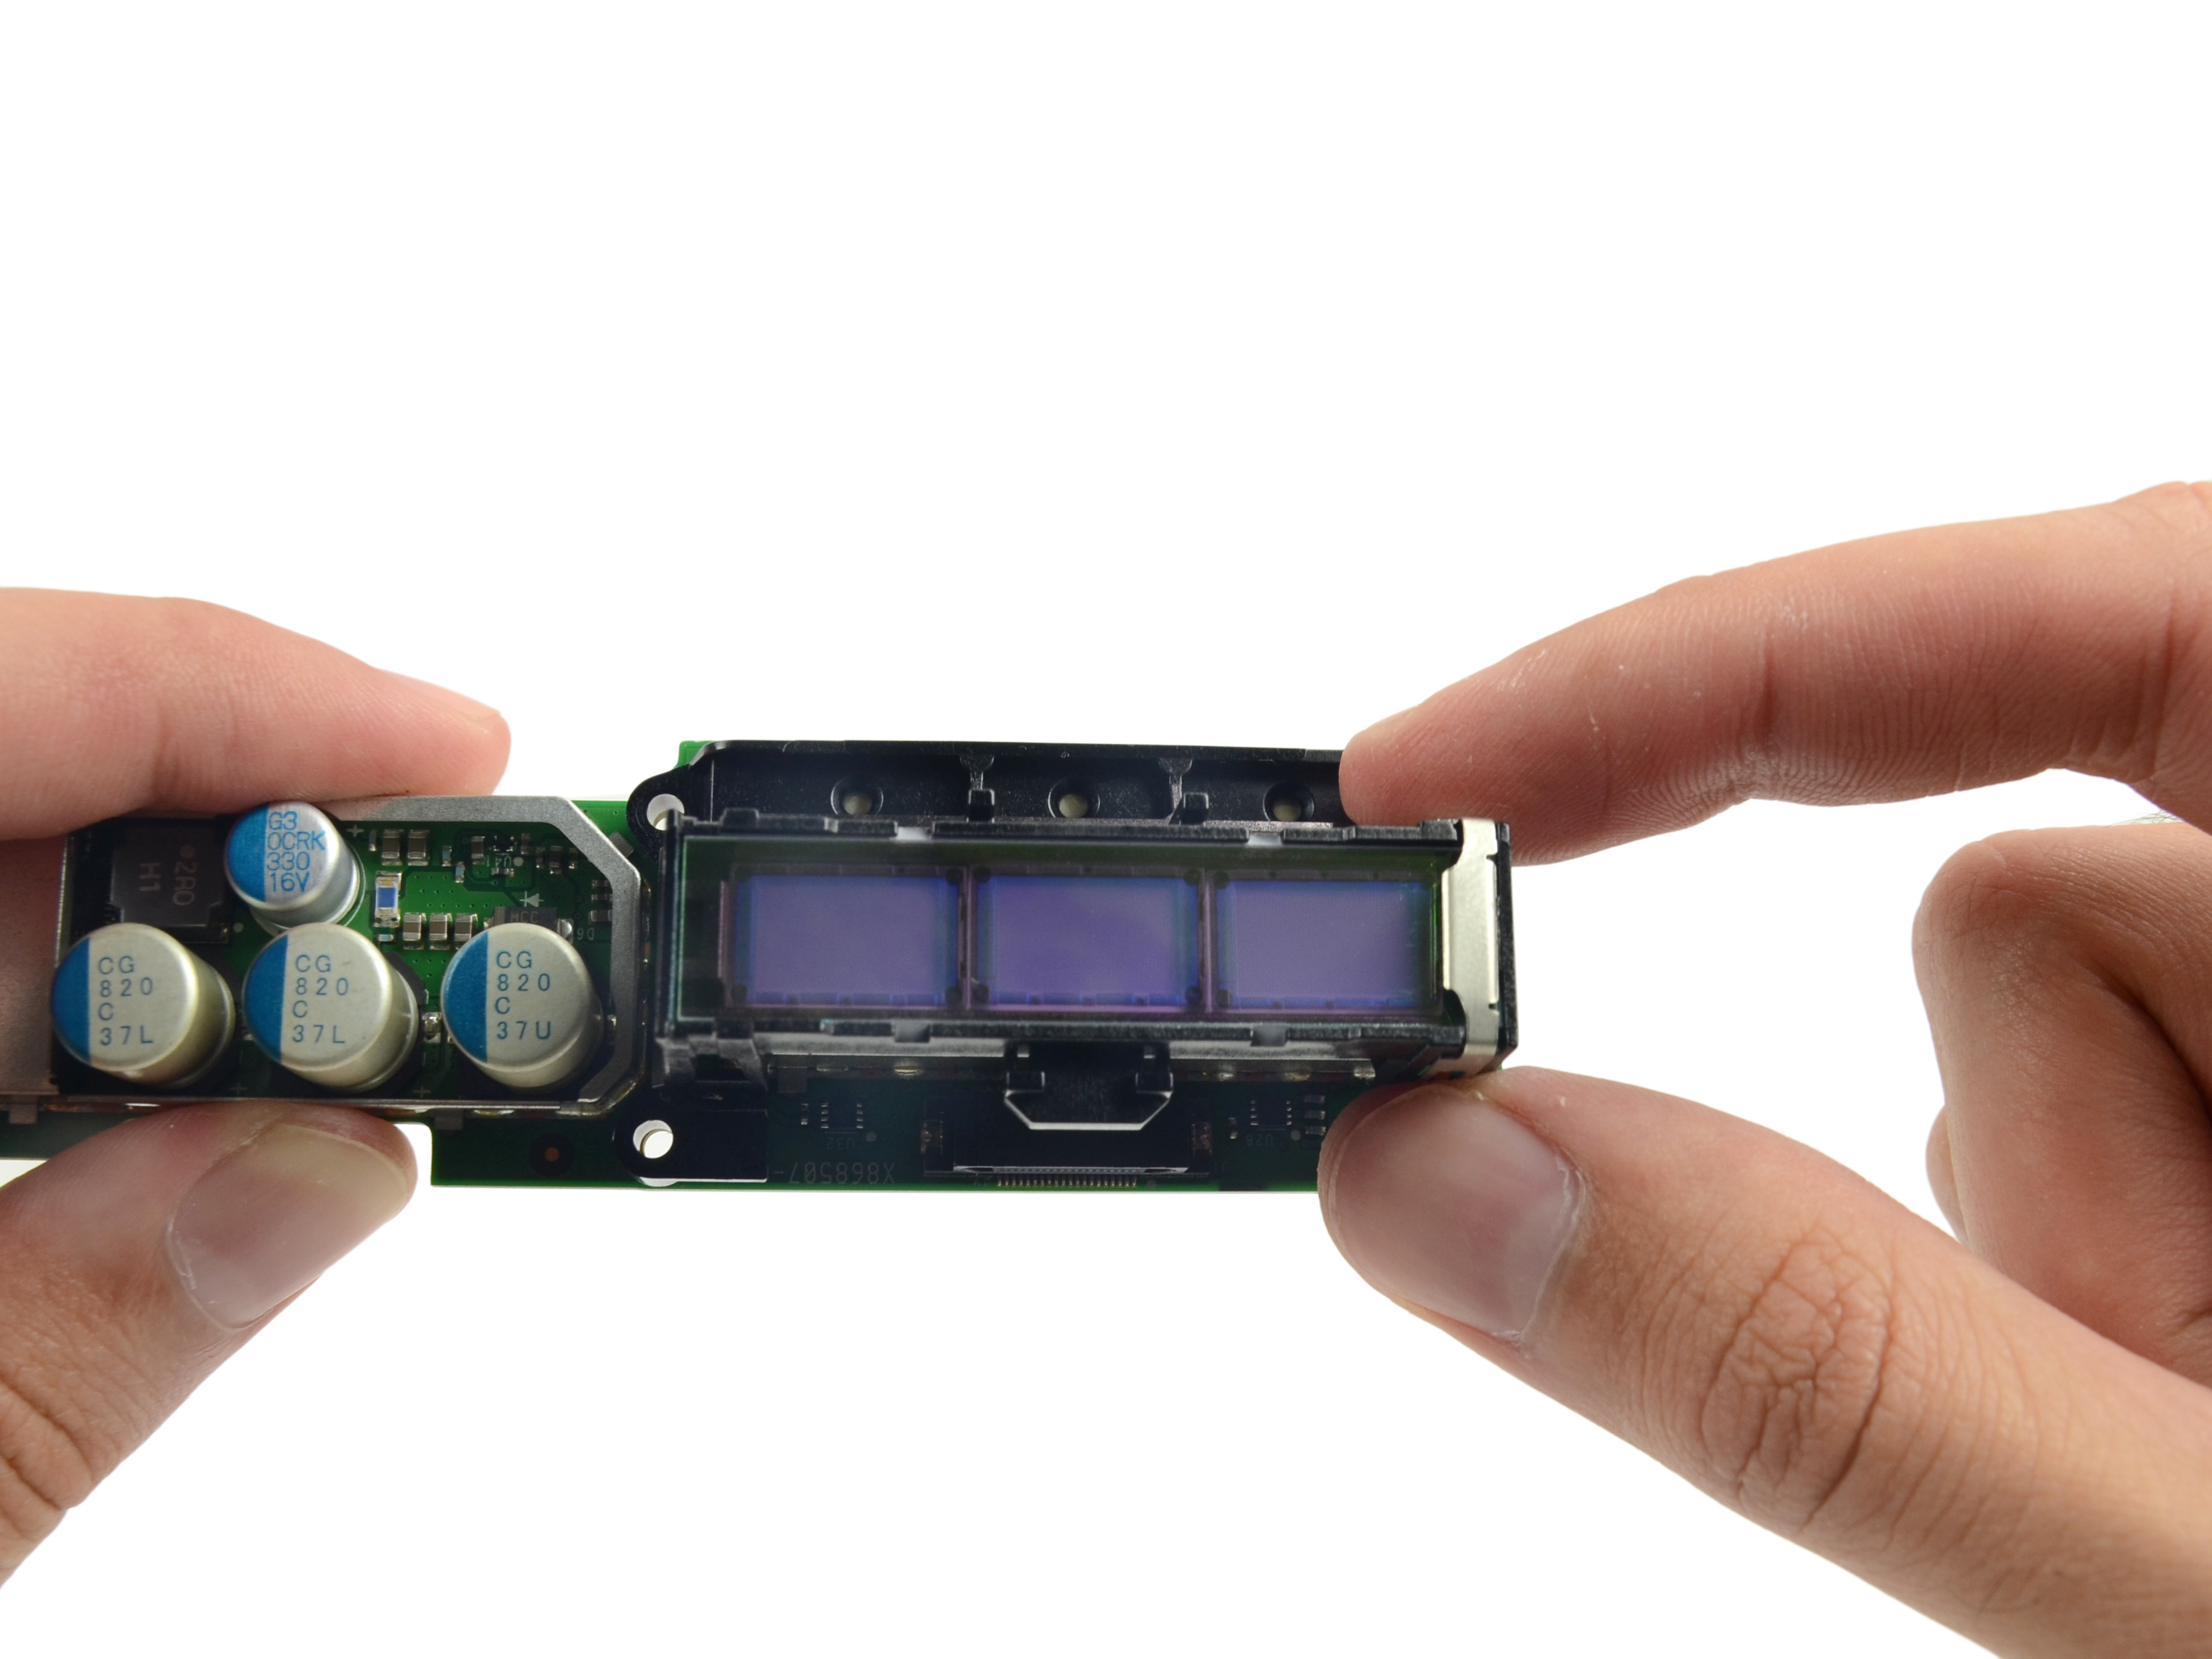 Our First Look at the Xbox One Kinect IR Field - iFixit